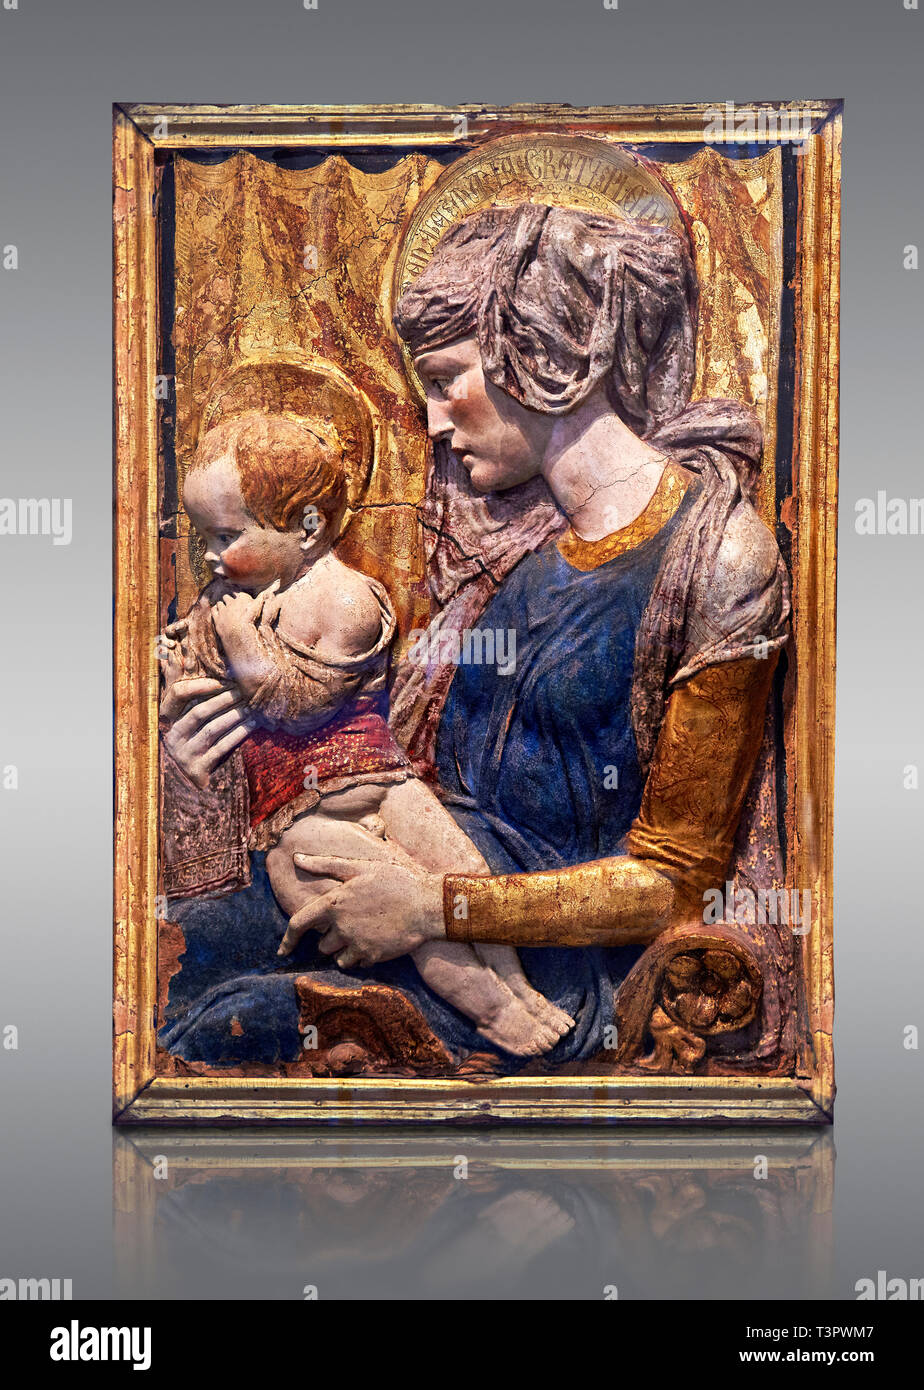 Painted terracotta relief panel depicting the Virgin and Child by Niccolo Bardi better known as Donatello. Made in Florence around 1386. Inv RF 353, T - Stock Image